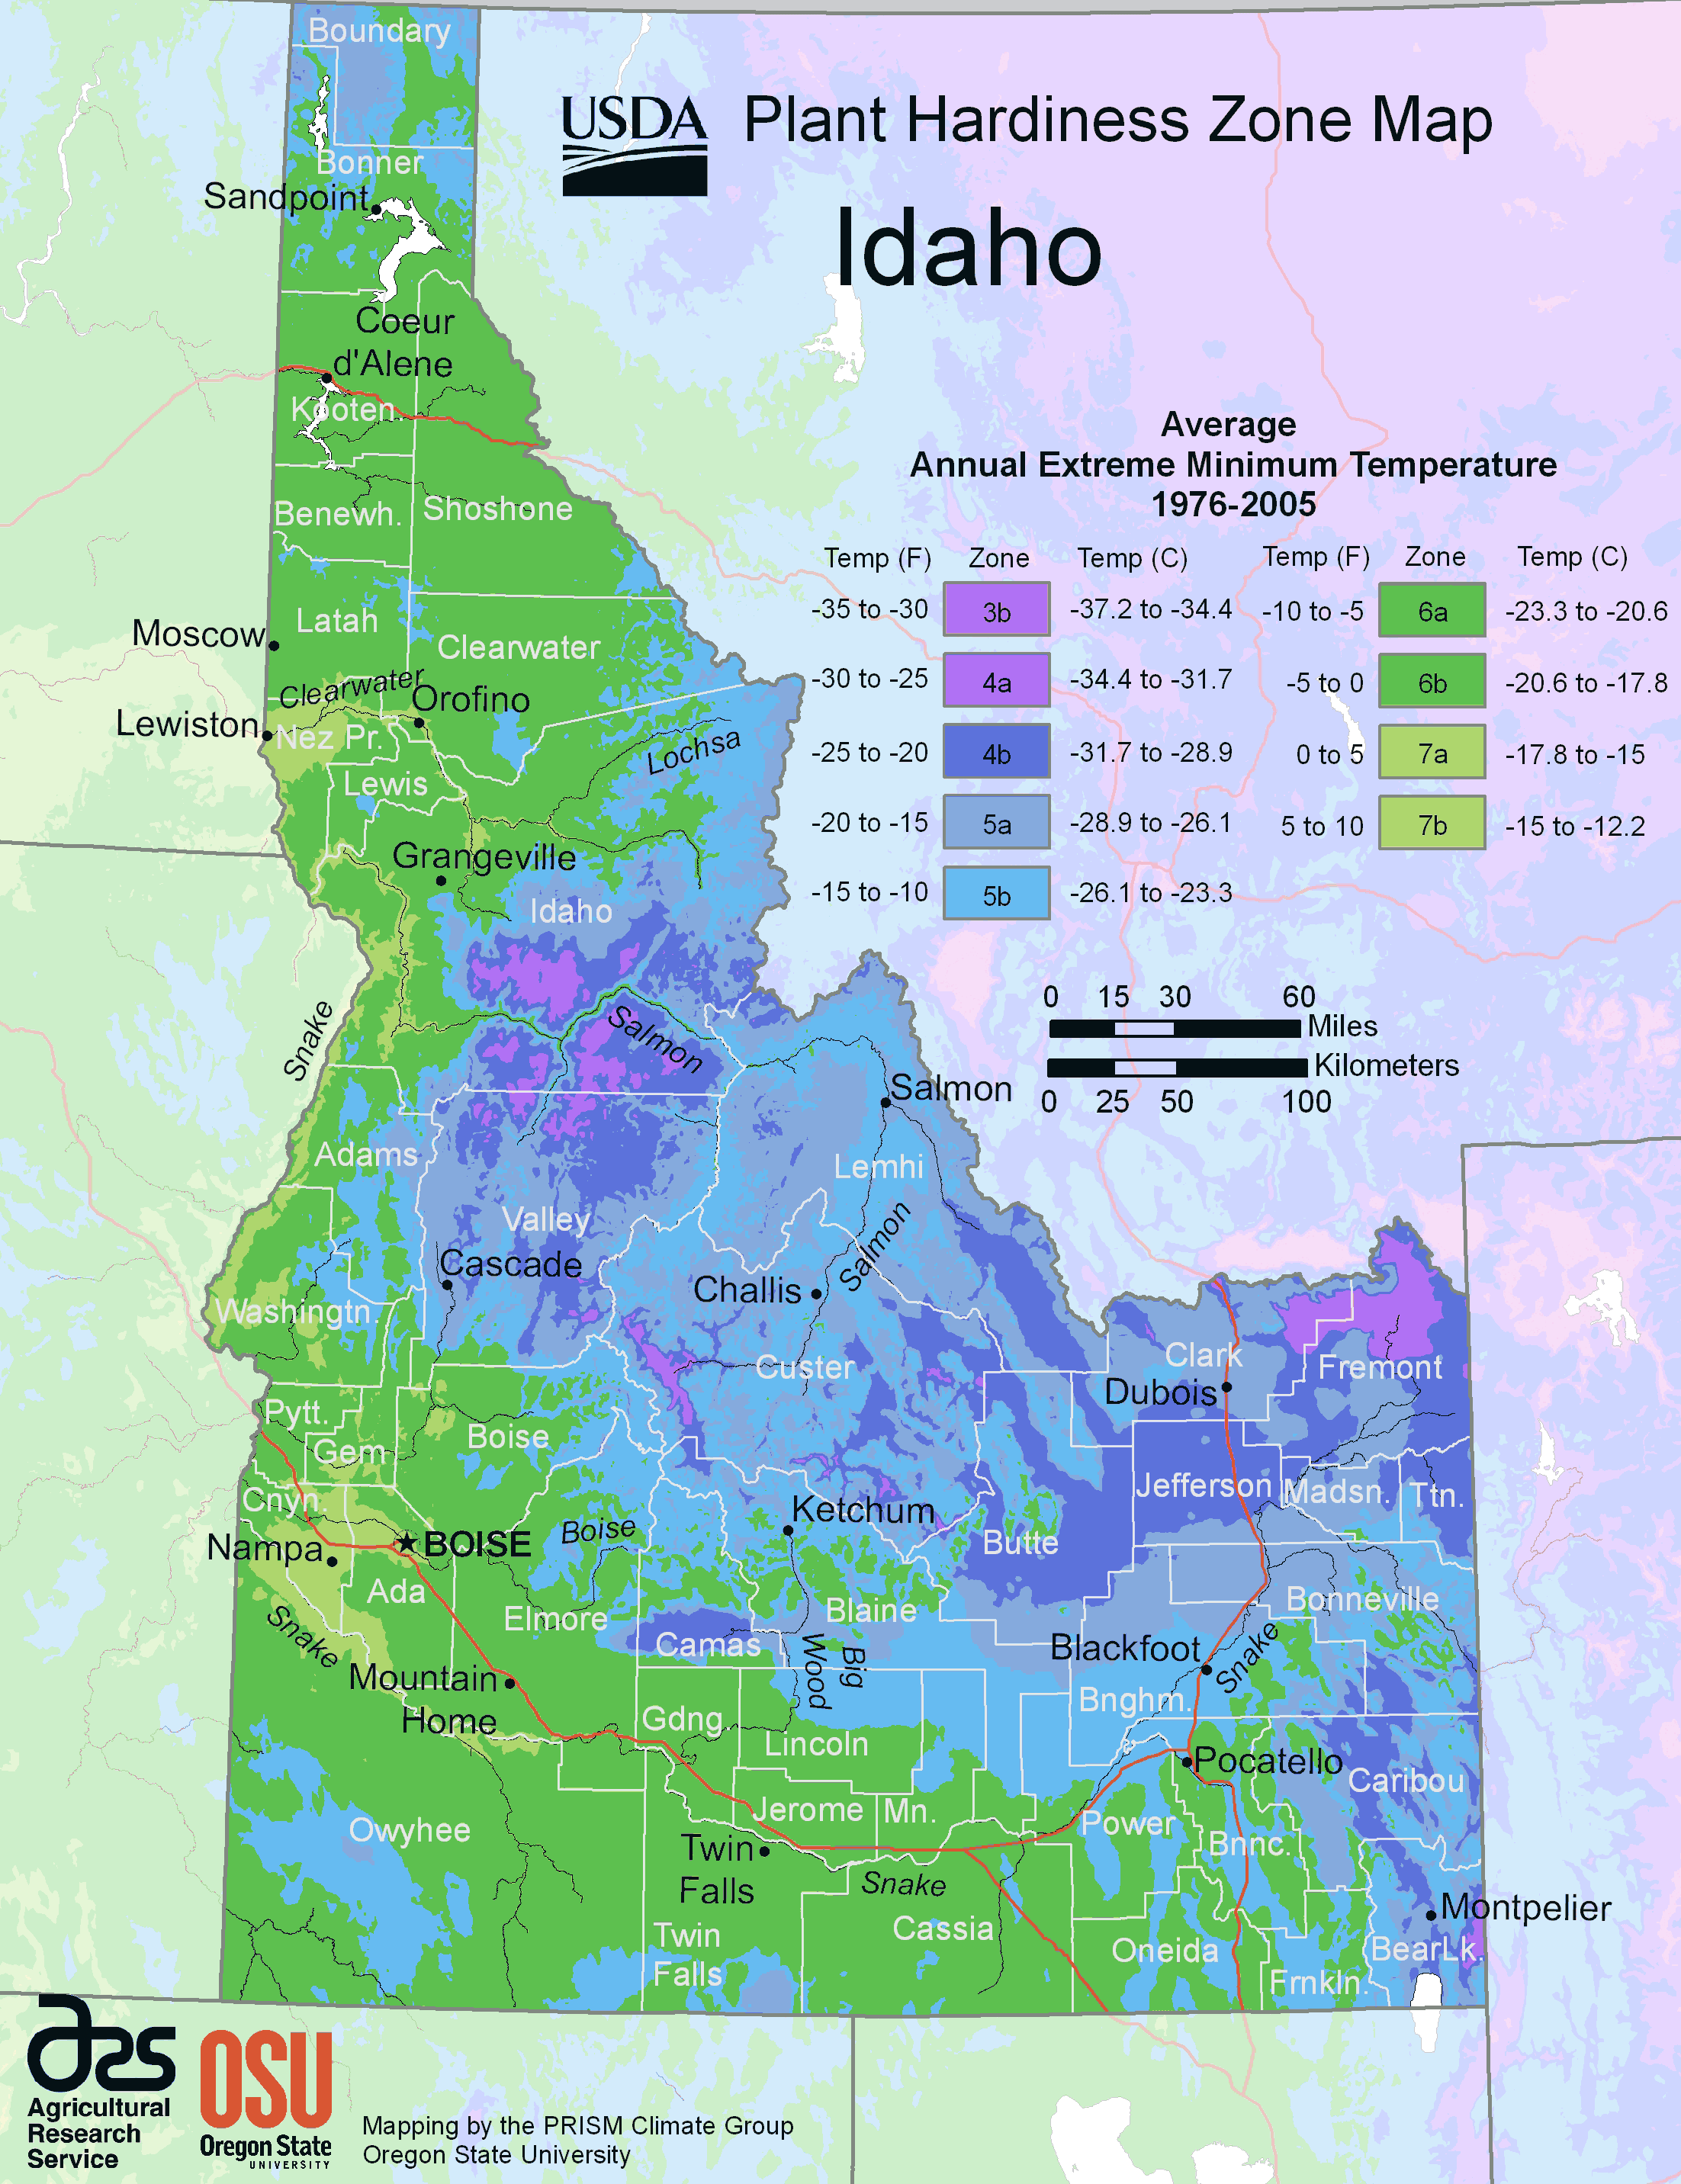 Idaho Plant Hardiness Zone Map • Mapsof.net